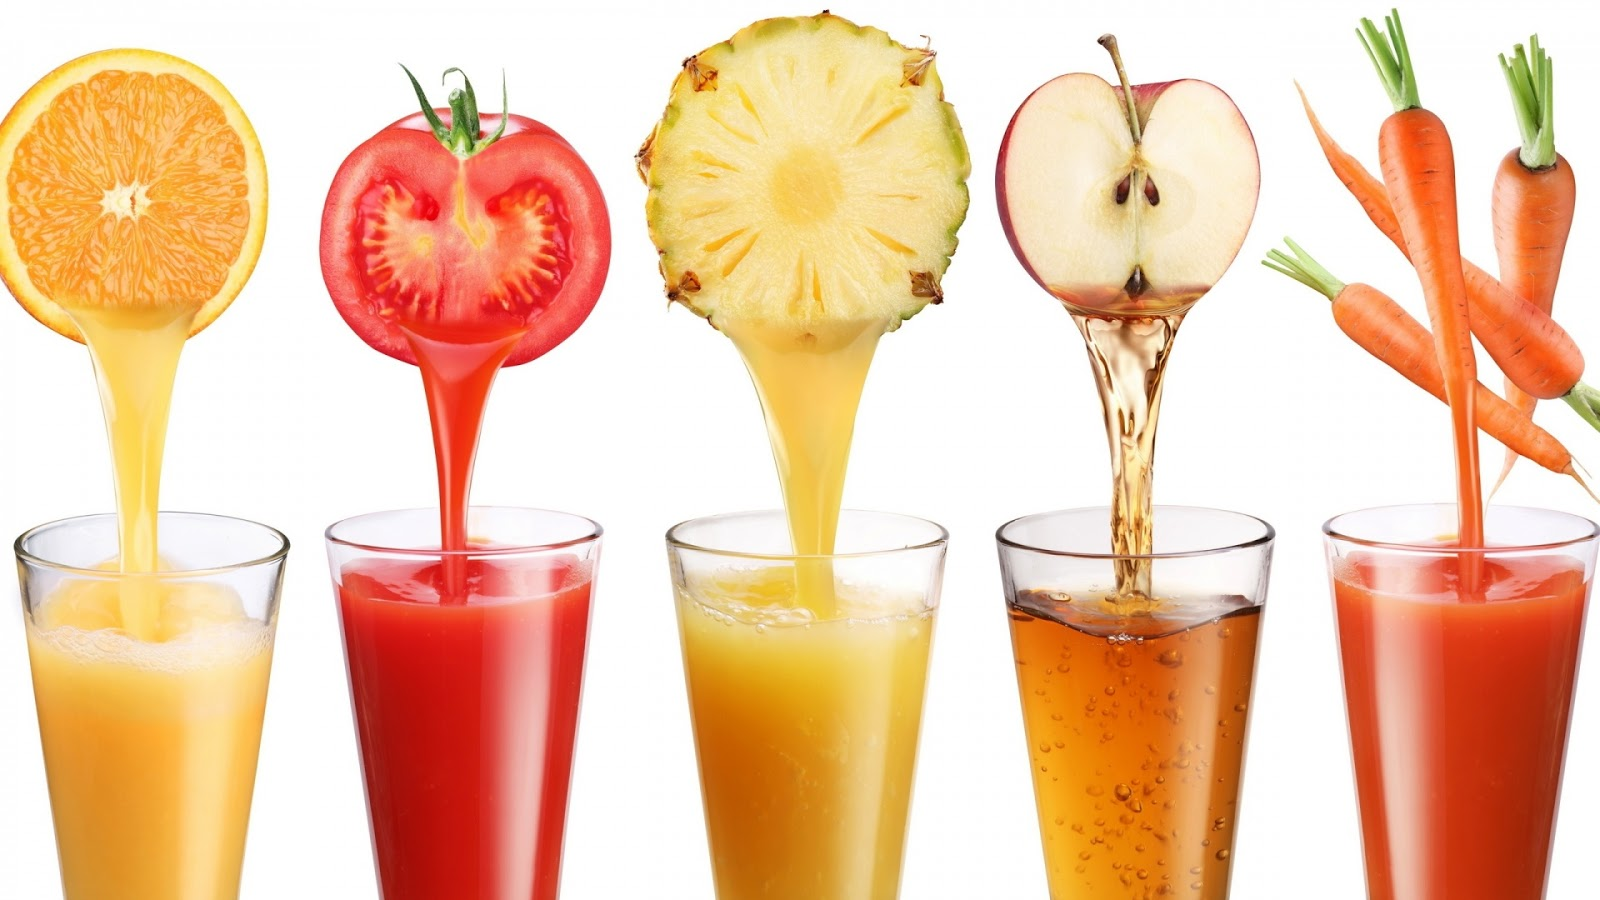 Ammae Blog - Whole fruit or Juice